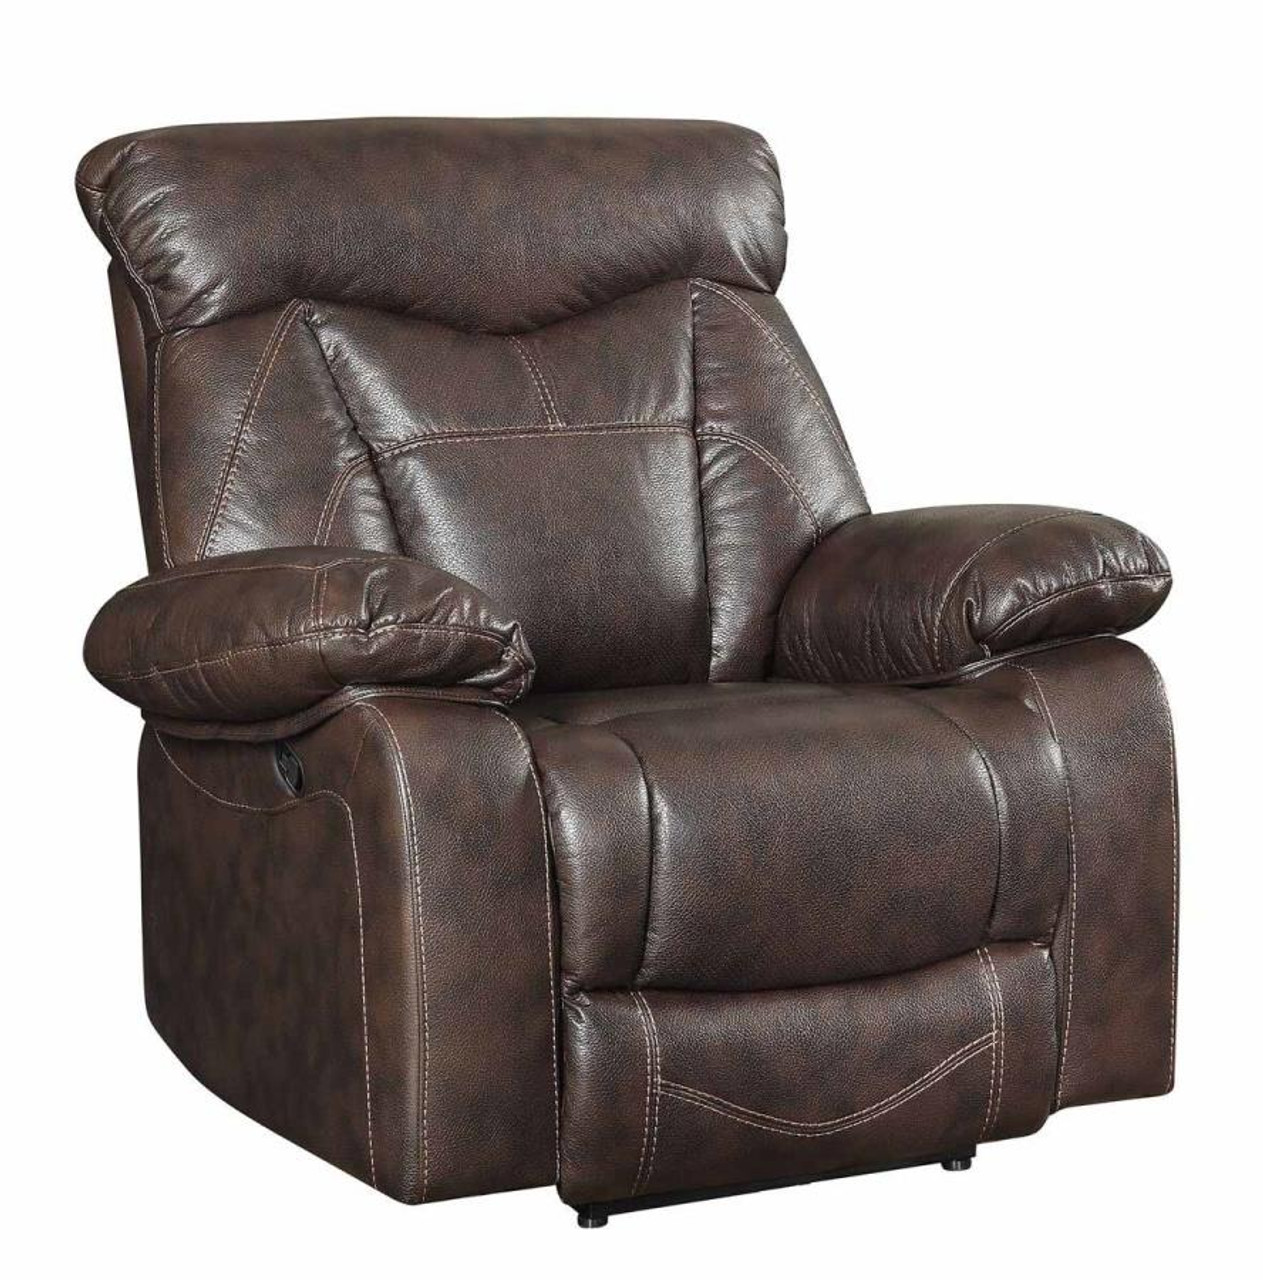 Coaster Zimmerman Recliner In Dark Brown Dealbeds Com